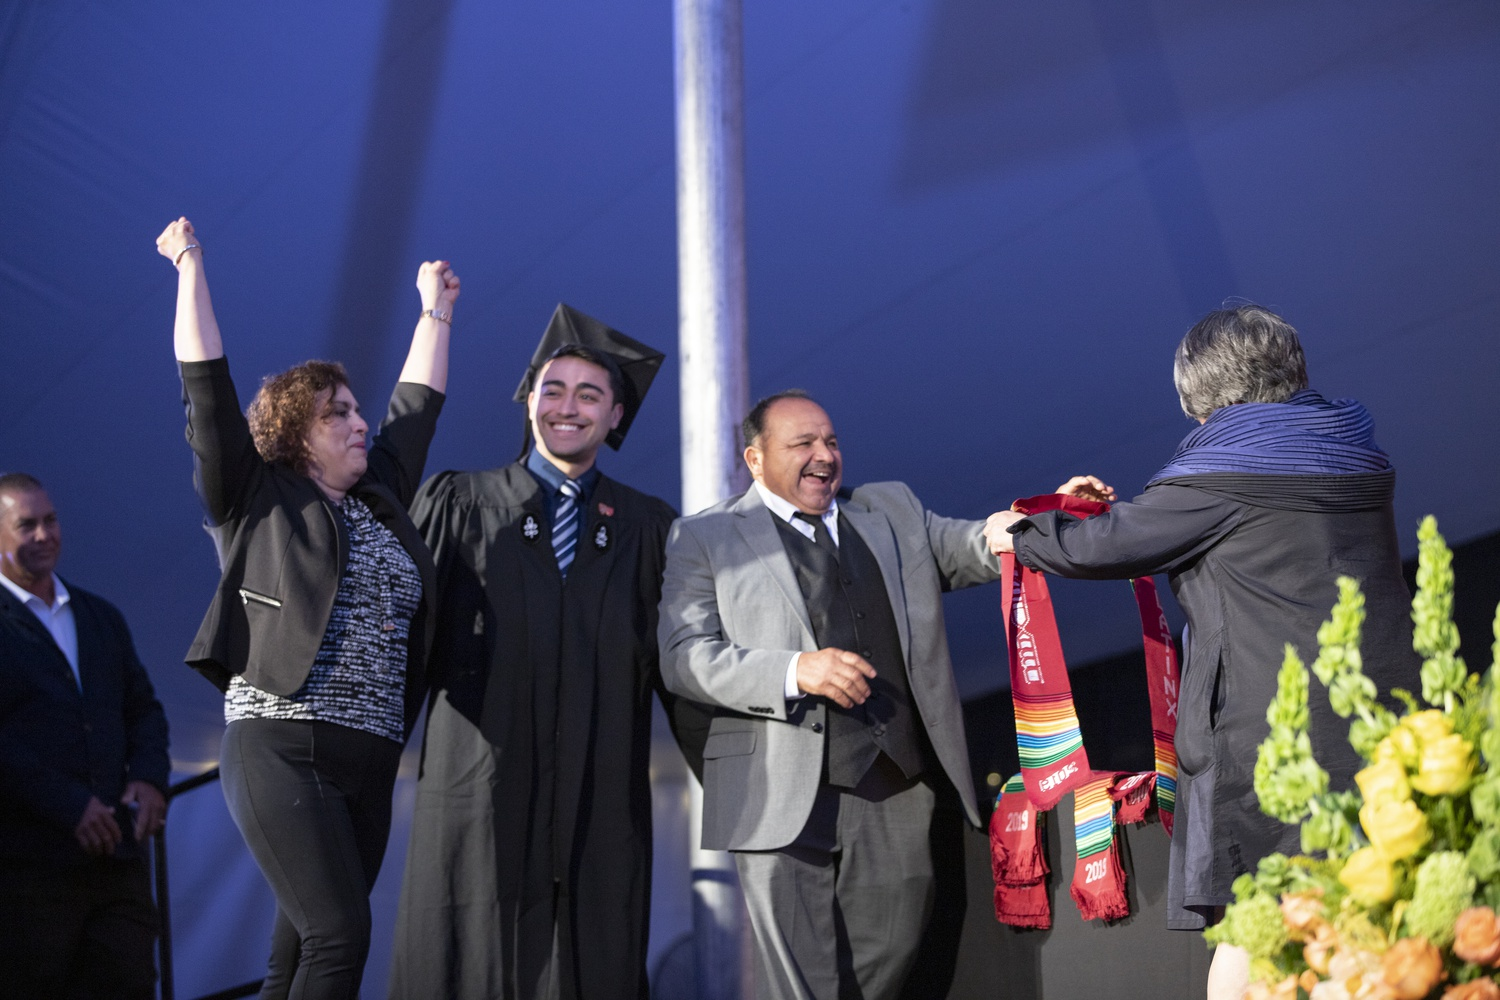 Family members draped graduating students with Latinx stoles as they walked on stage. The Latinx Commencement took place Tuesday evening at Radcliffe Yard.